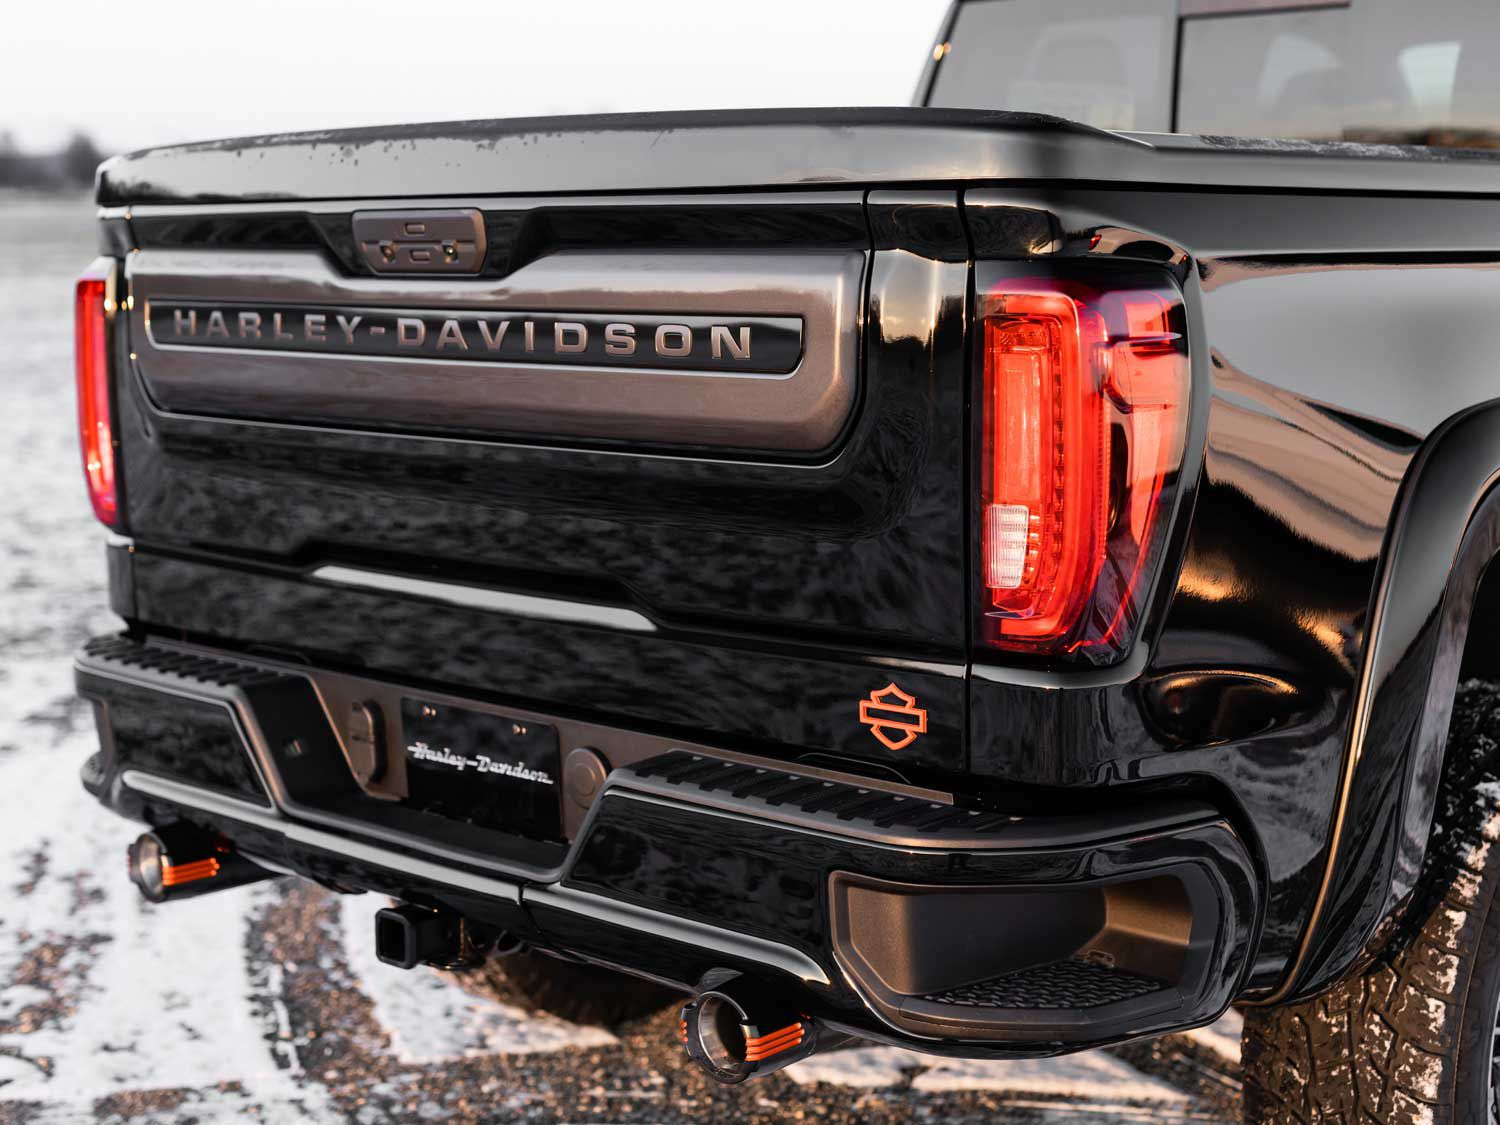 The back side of the Harley-Davidson GMC includes a custom designed rear bumper with dual H-D exhaust tips and a tailgate with a sharp-looking Harley appliqué.